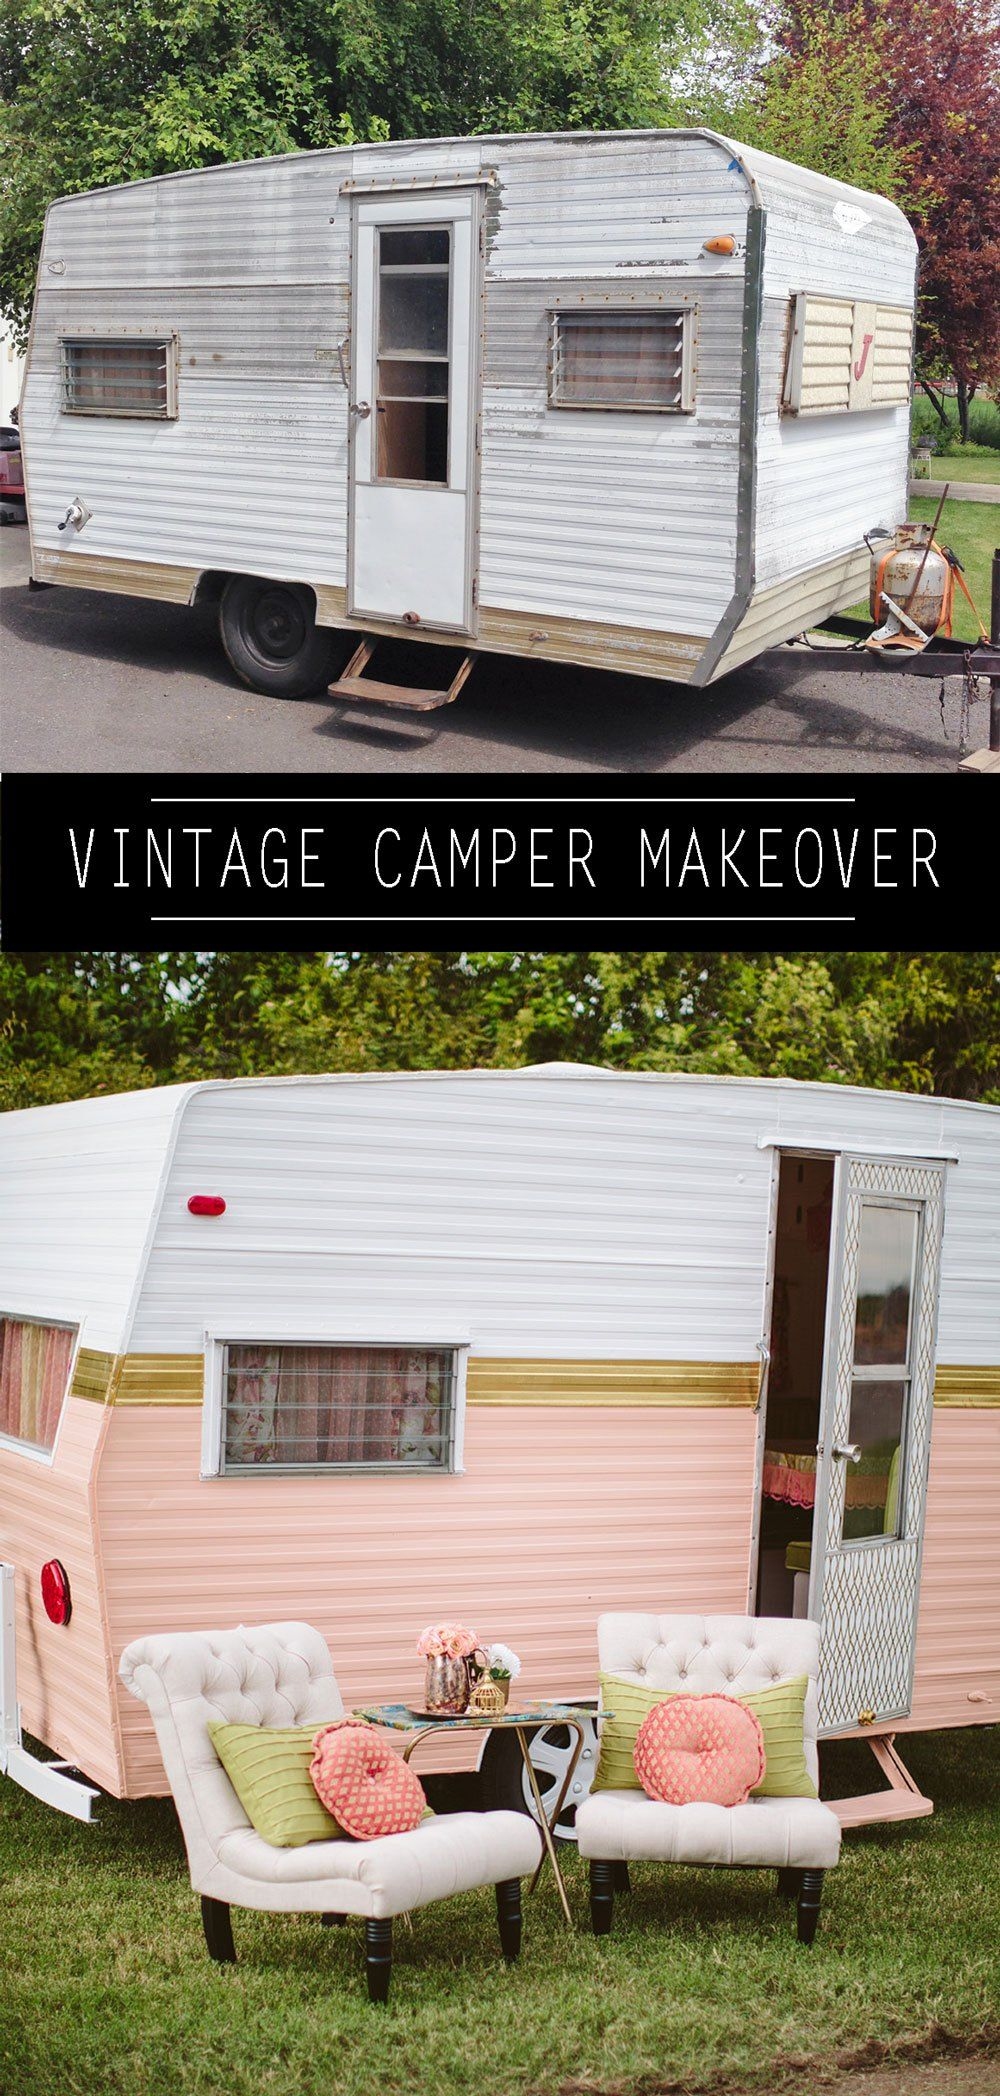 How to Paint a Vintage Camper | Small House . | Vintage camper ... Modern Motorhome Paint Designs on bicycle paint designs, automotive paint designs, easy paint designs, van paint designs, boat paint designs, bmw paint designs, truck paint designs, motor coach paint designs, ambulance paint designs, toy hauler paint designs, vehicle paint designs, volvo paint designs, classic car paint designs, motorbike paint designs, house paint designs, canoe paint designs, bike paint designs, tipi paint designs, business paint designs, engine paint designs,